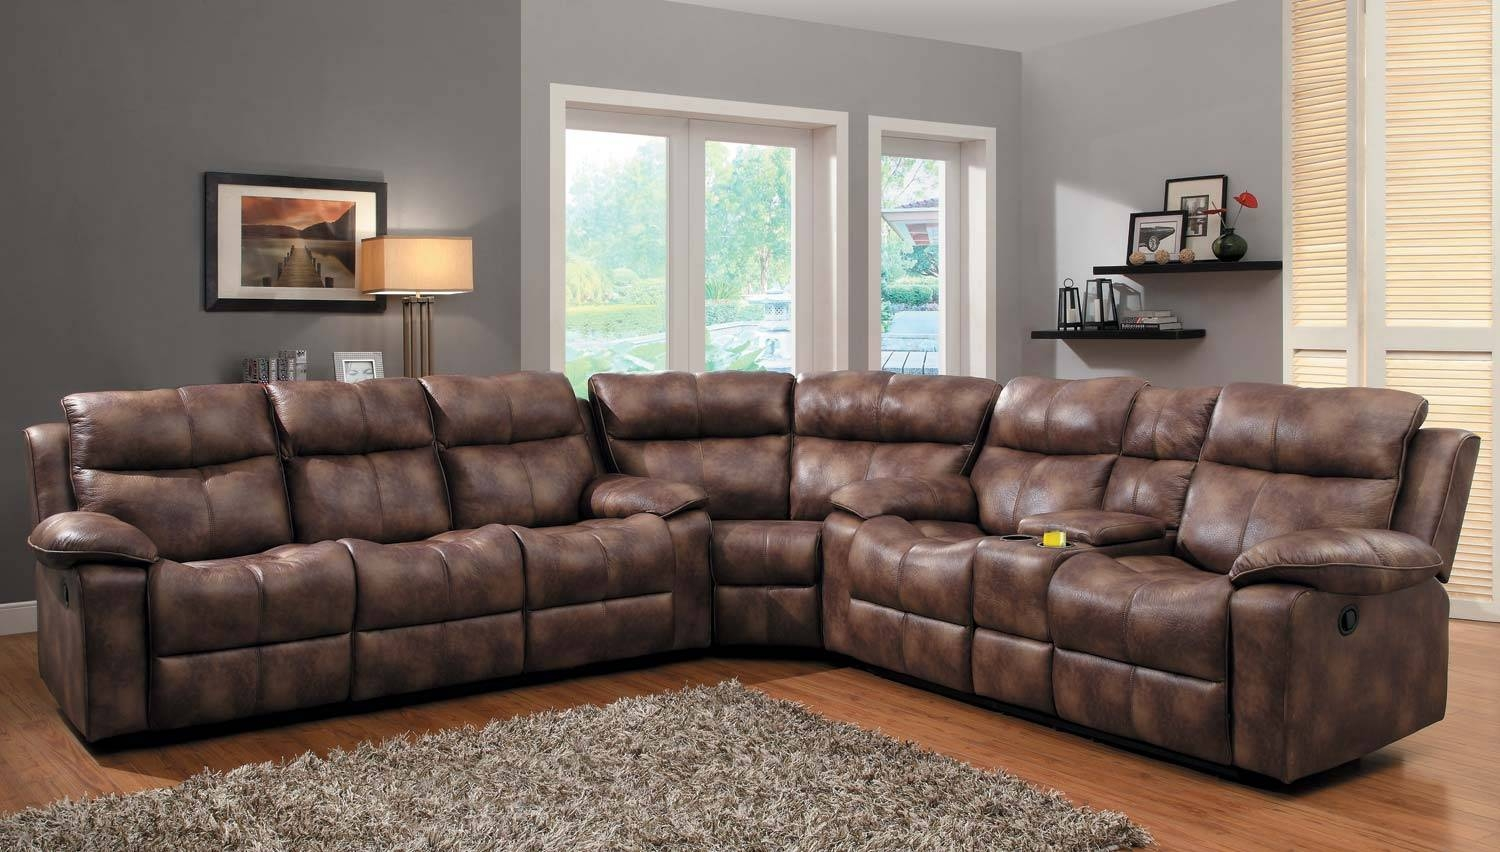 Furniture: Fantastic Sectional Couches With Recliners For Your inside Recliner Sectional Sofas (Image 9 of 30)